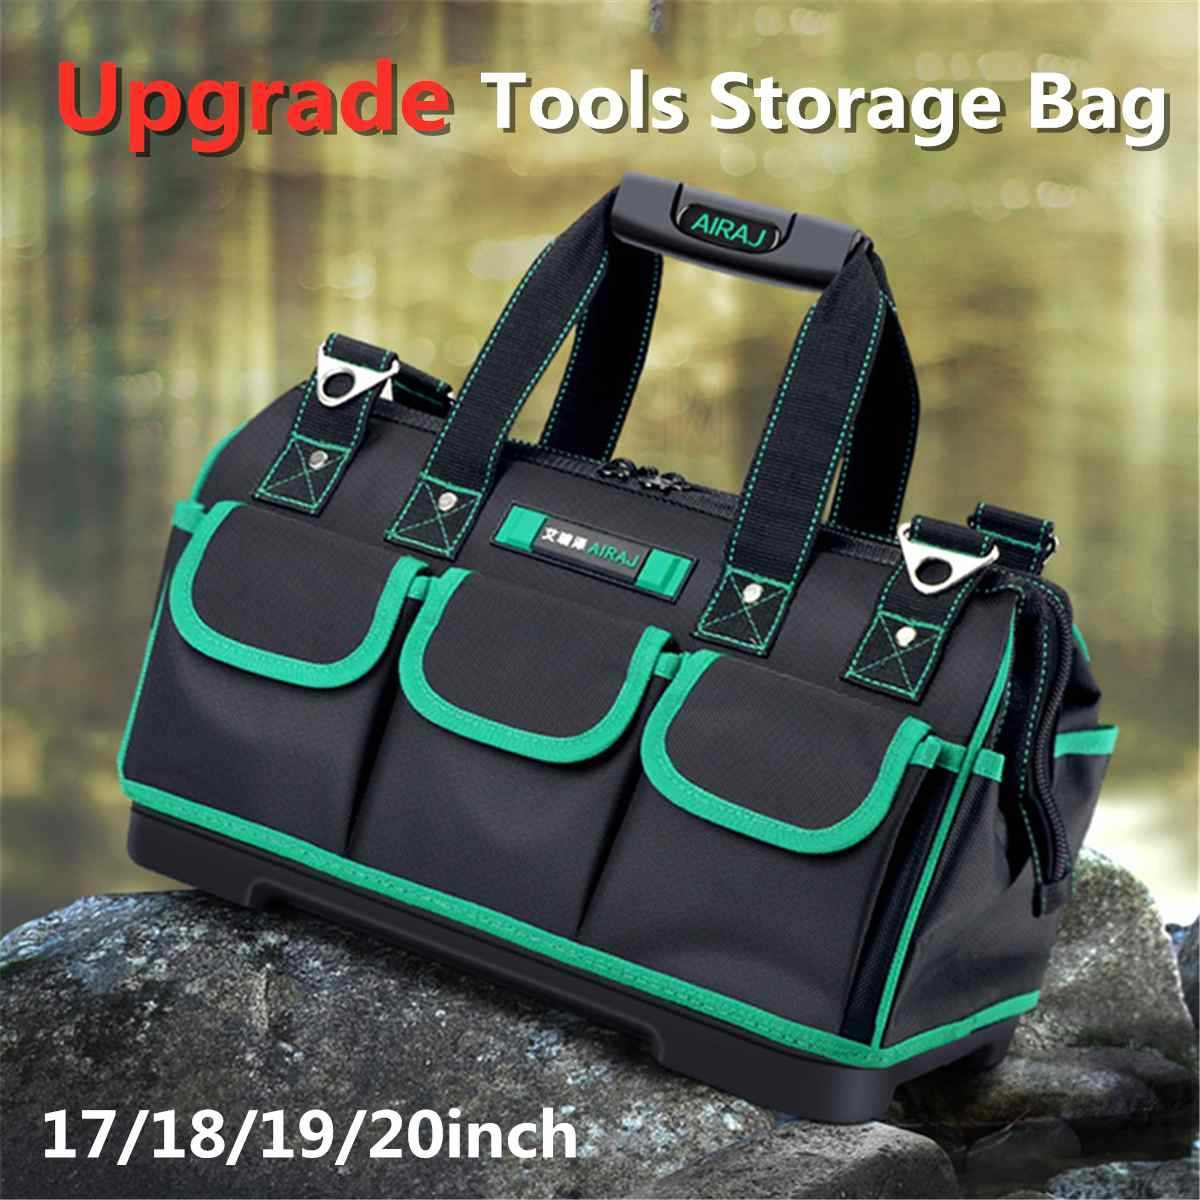 Tool Bag Oxford Cloth Waterproof Tool Bags Electrician Portable Multi Function Work Bag Utility Tool Organizer Storage Bag